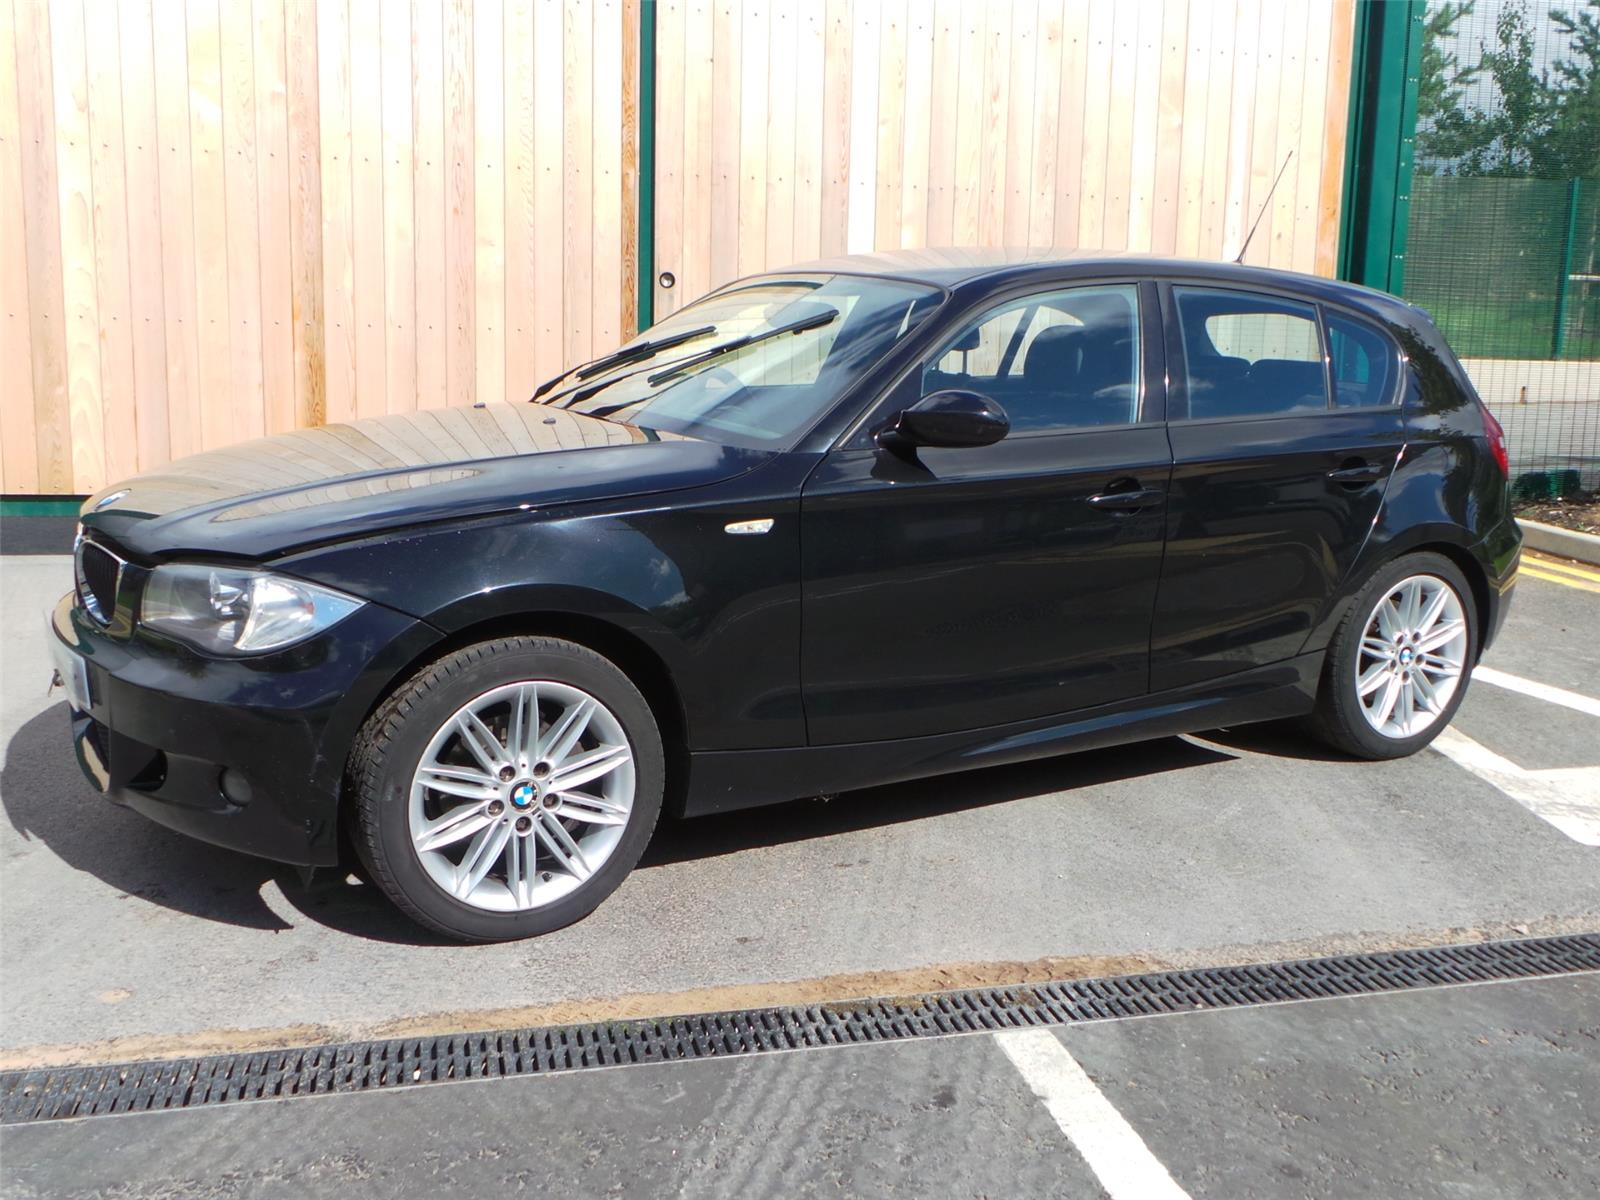 Cars Northern Ireland Used Cars Ni Second Hand Cars For: 2007 BMW 1 SERIES 118D M SPORT 5 DOOR HATCHBACK (DIESEL